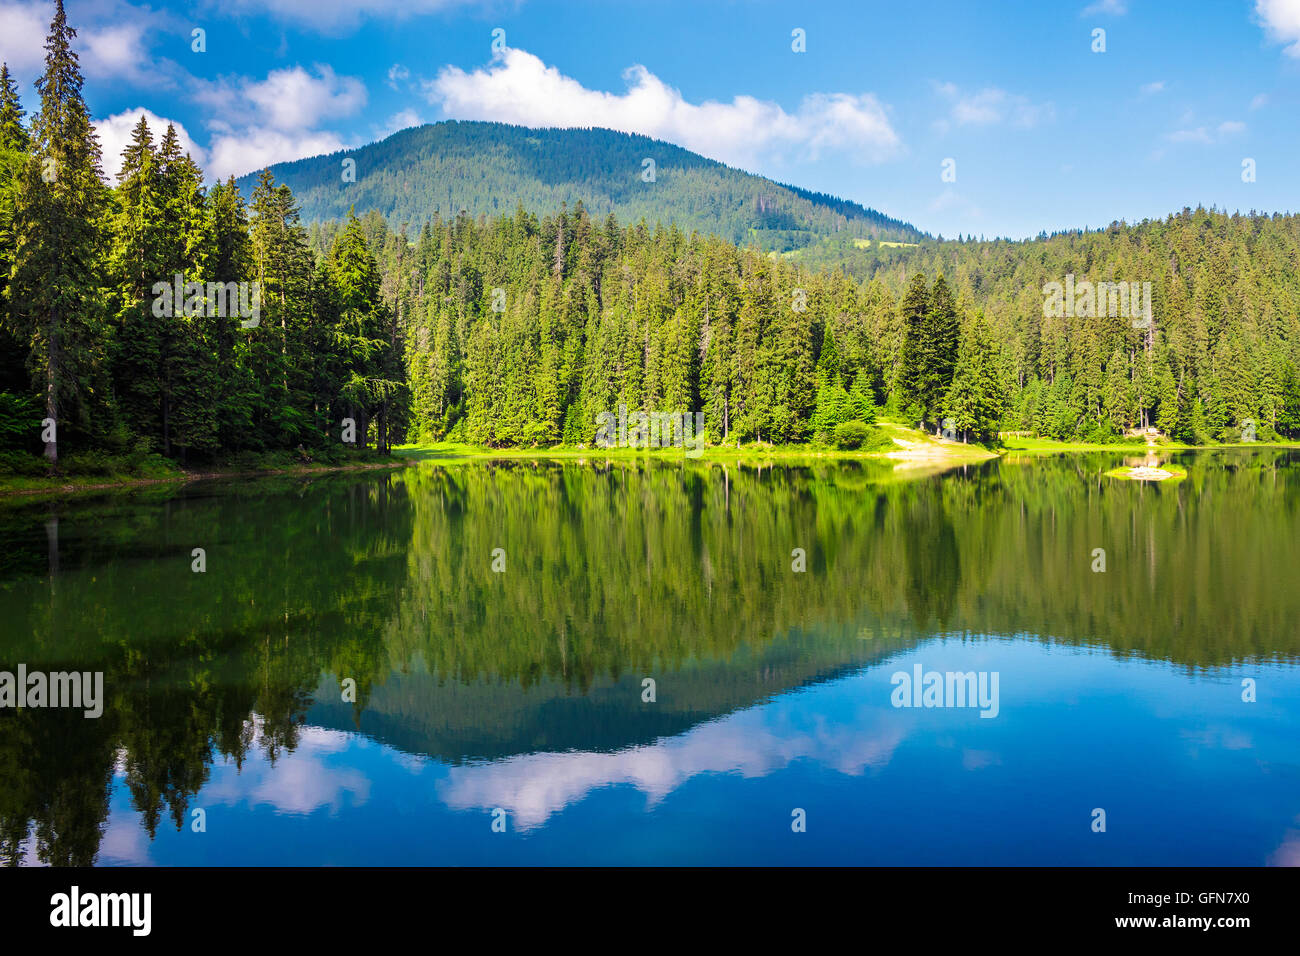 landscape near the lake among conifer forest in mountains in the early summer morning - Stock Image